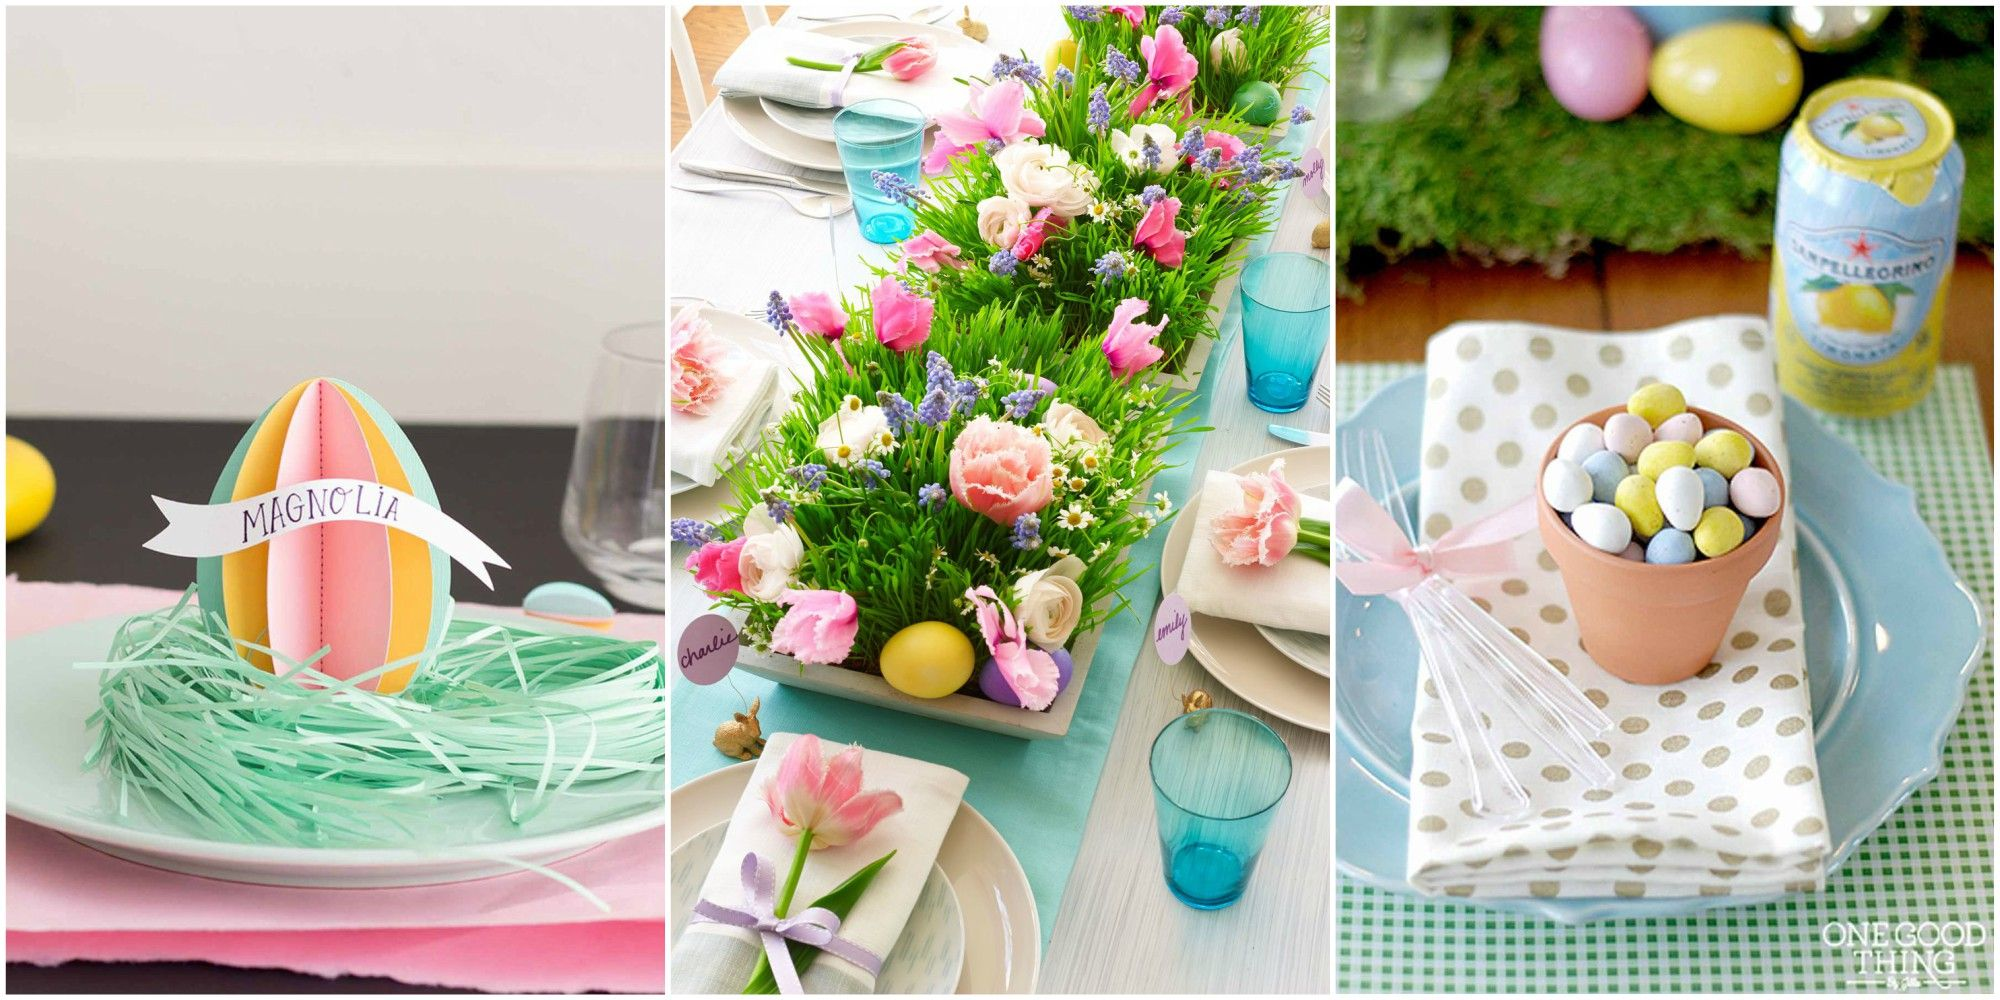 easter brunch table  sc 1 st  Woman\u0027s Day & 24 Easter Table Decorations - Table Decor Ideas for Easter Brunch